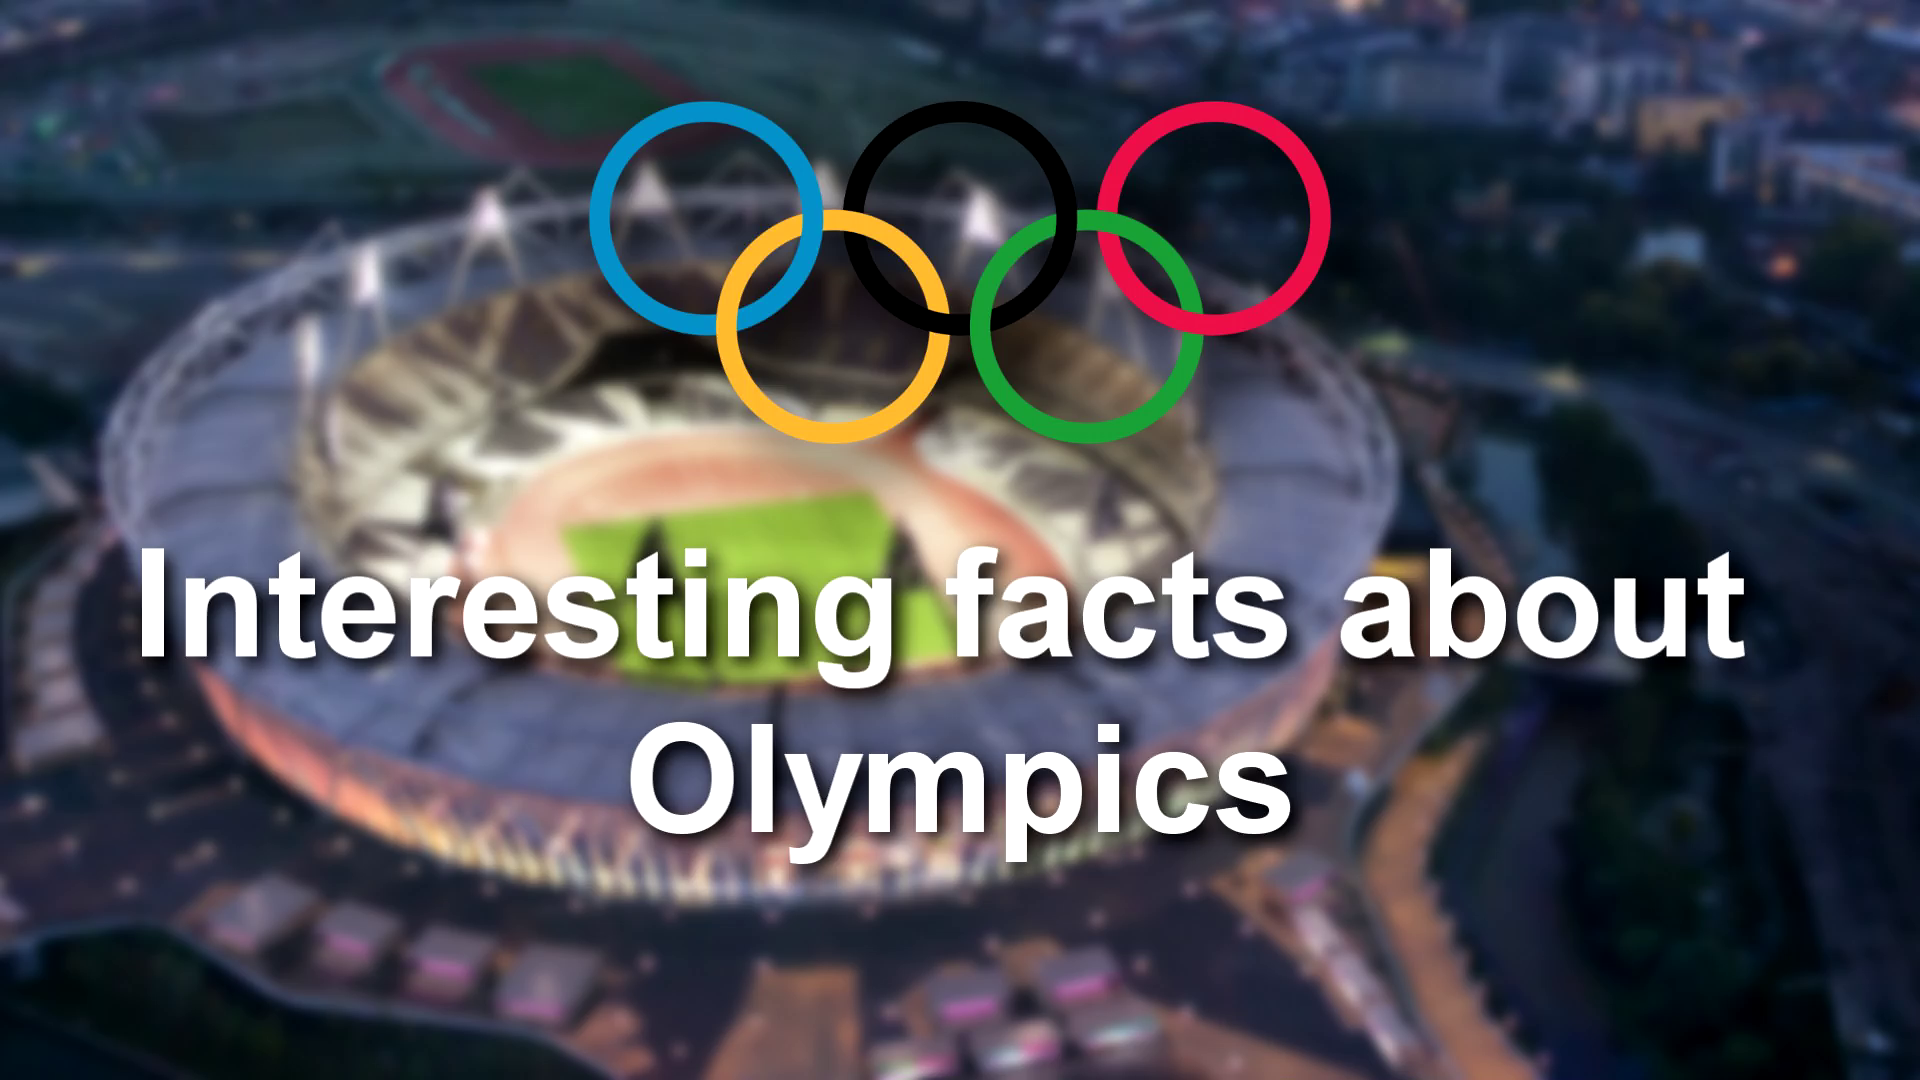 Jaaniye kuch Interesting facts about the Olympic Games